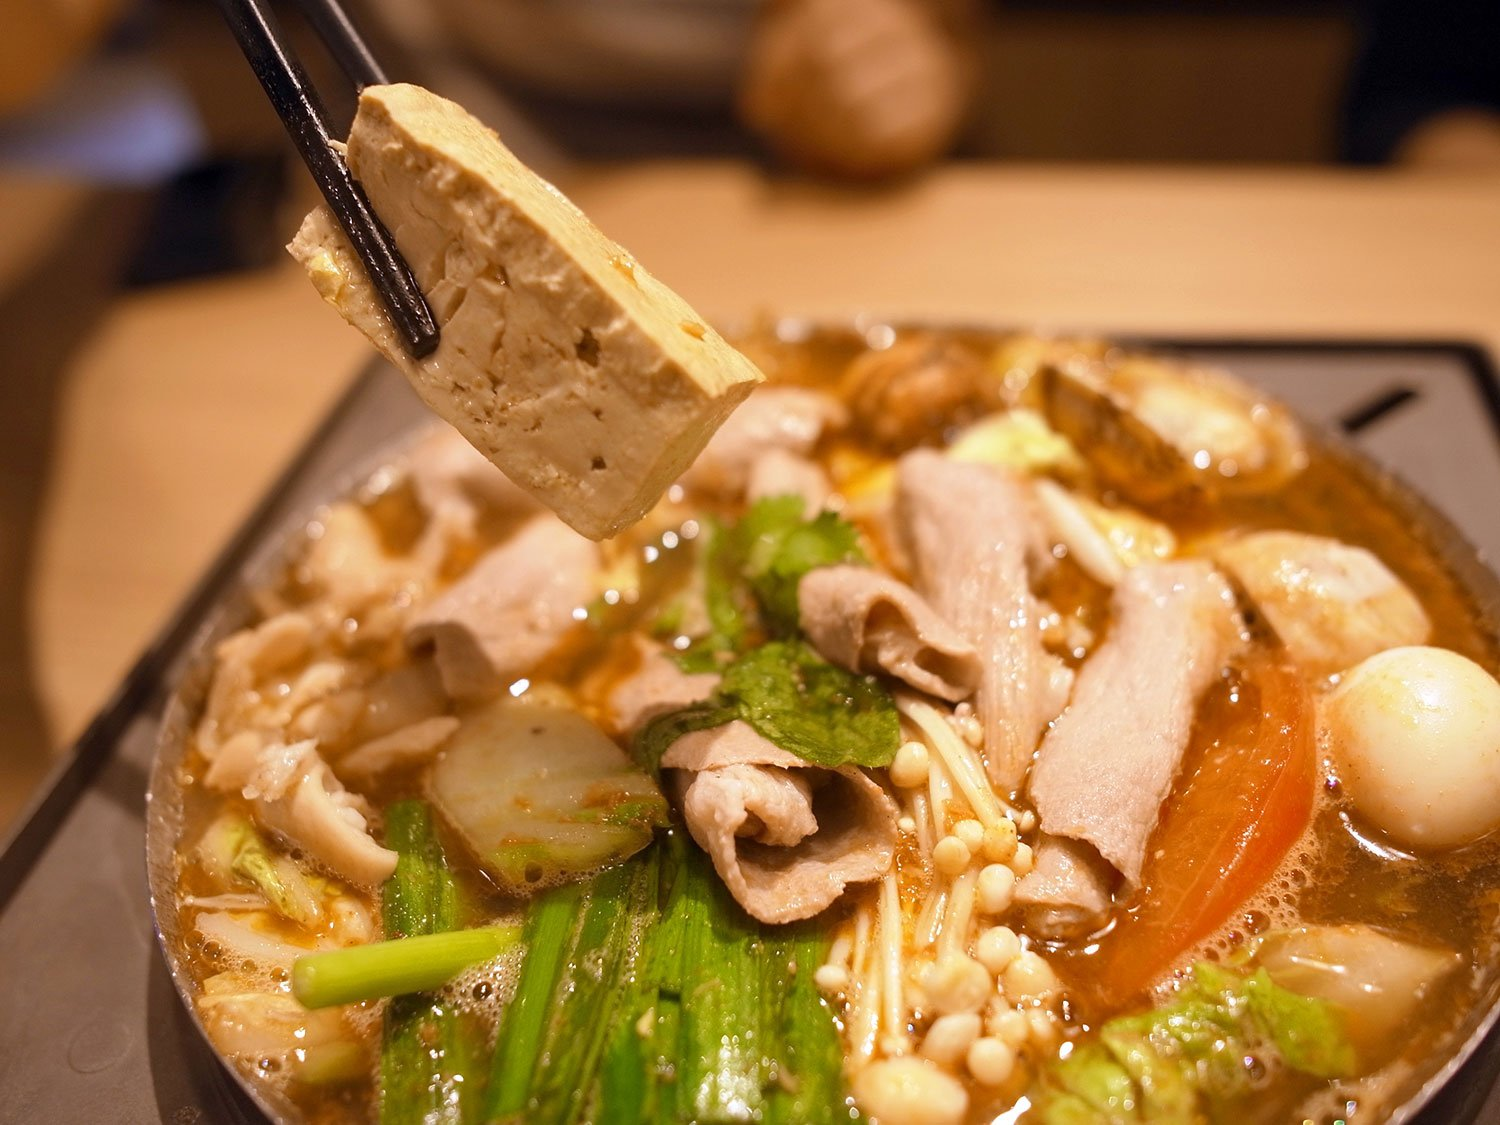 BOILING POINT 沸点